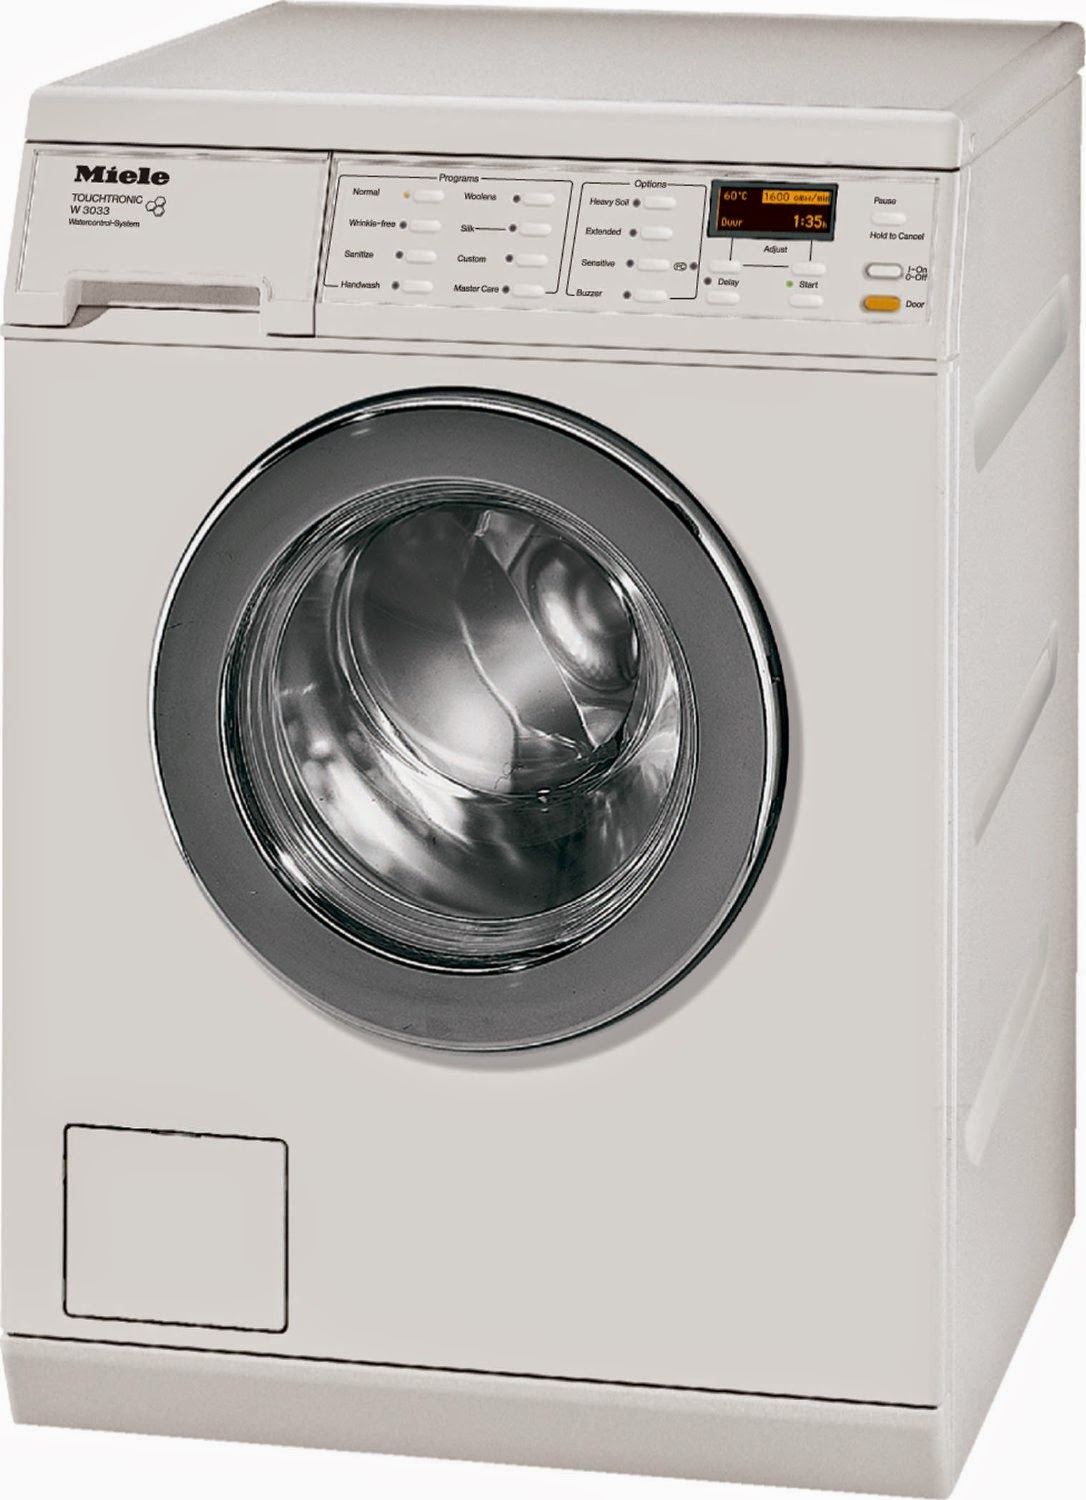 Miele stackable washer dryer ventless - W3033 24 Front Load Washer White Miele Compact Washer Dryer